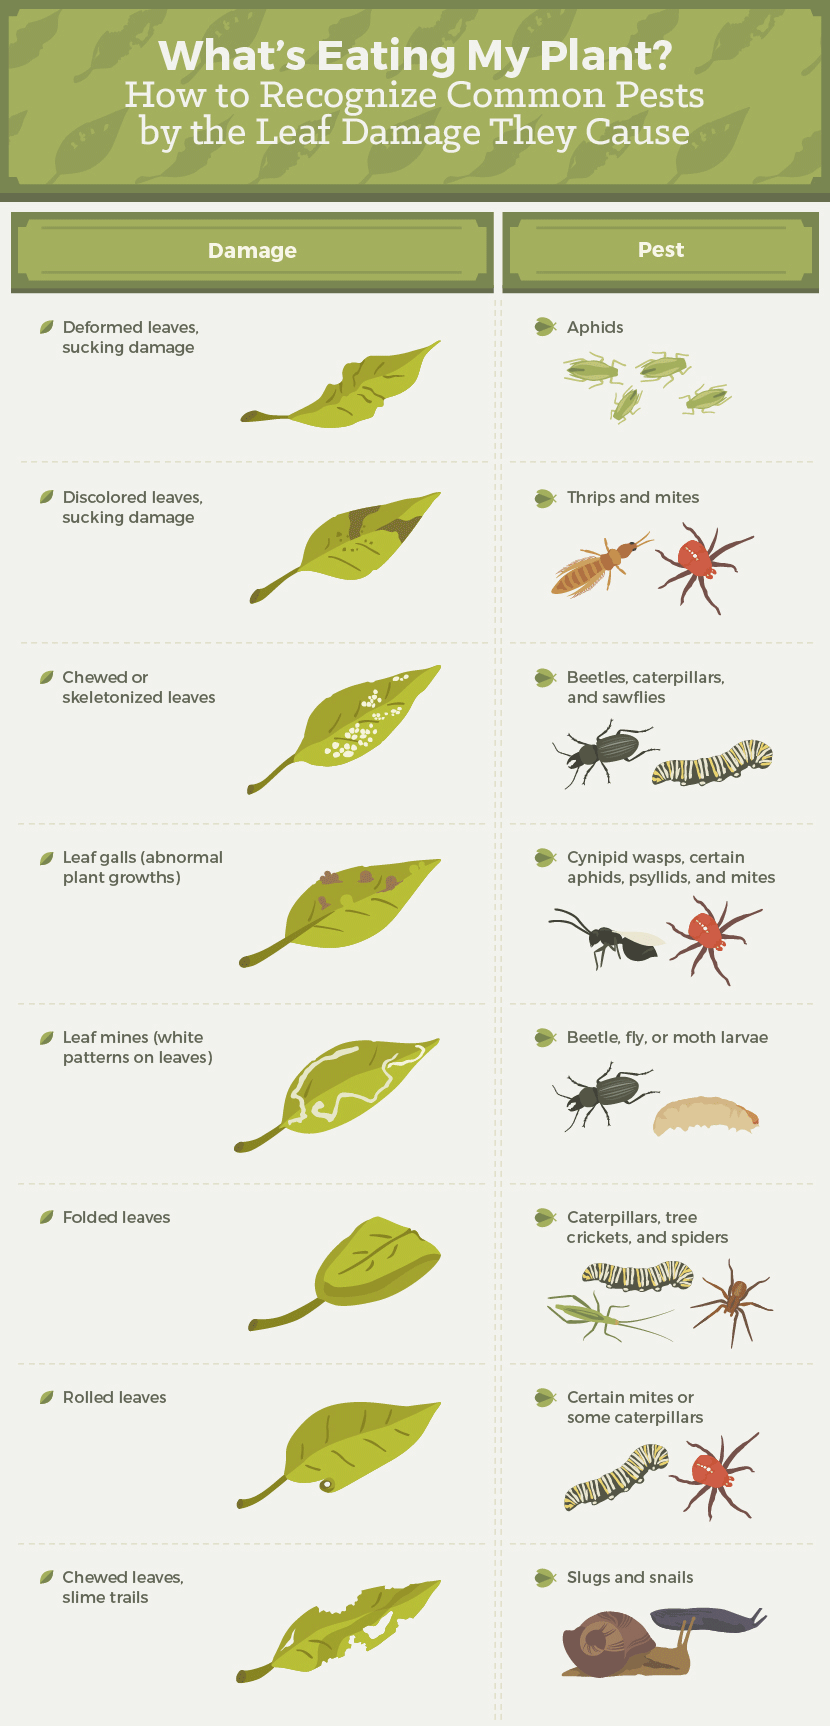 recognize_common_pests_by_leaf_damage_002.png